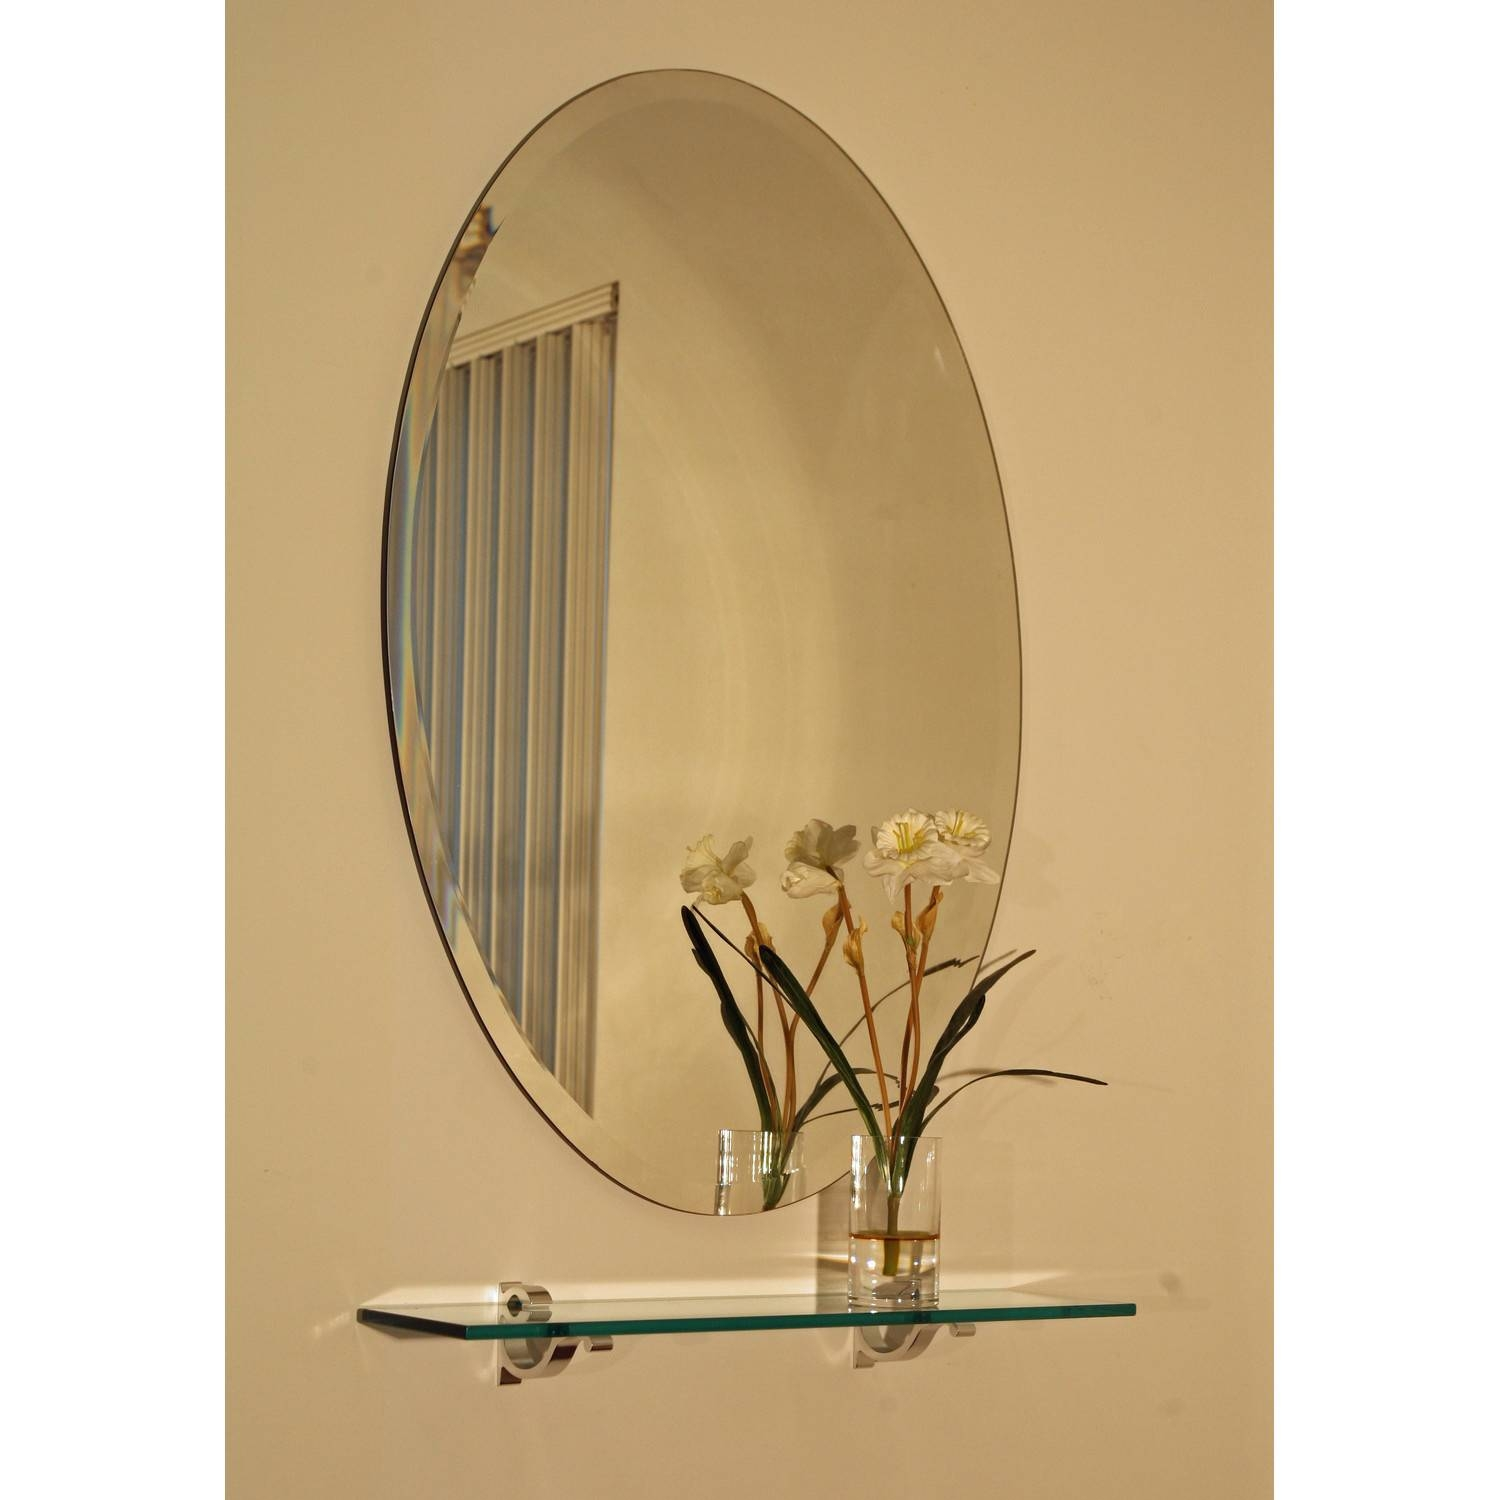 Regency 24 X 36 Oval Beveled Edge Mirror Spancraft Wall Mirror with regard to Oval Bevelled Mirrors (Image 11 of 15)